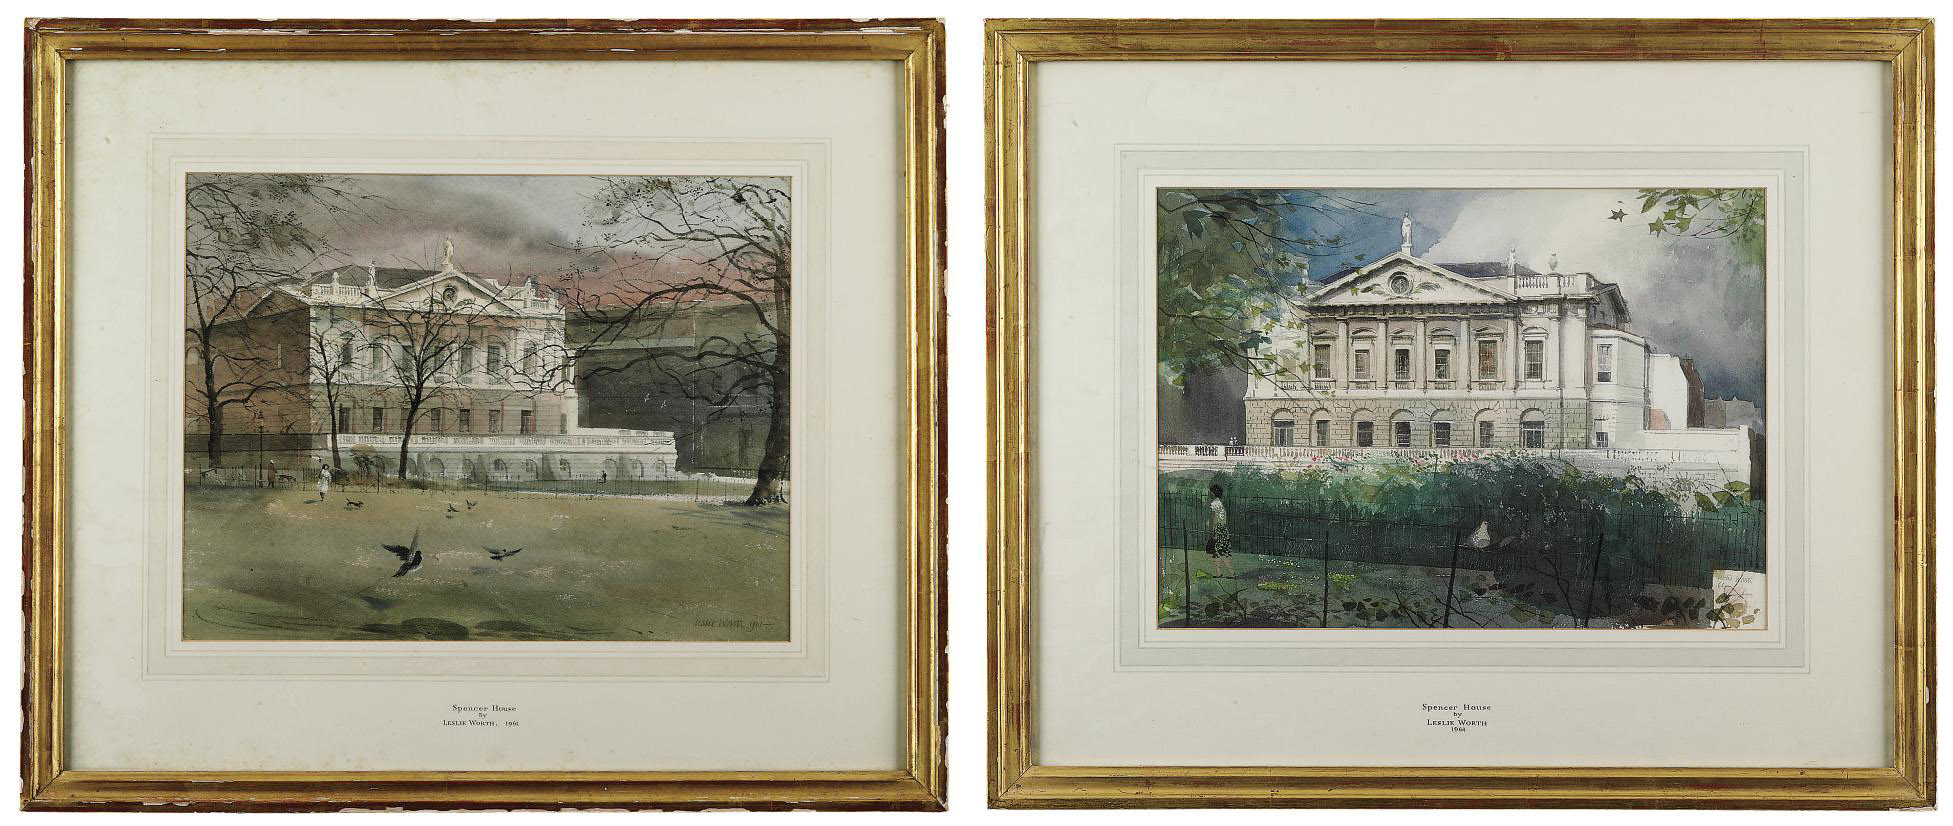 Two views of Spencer House